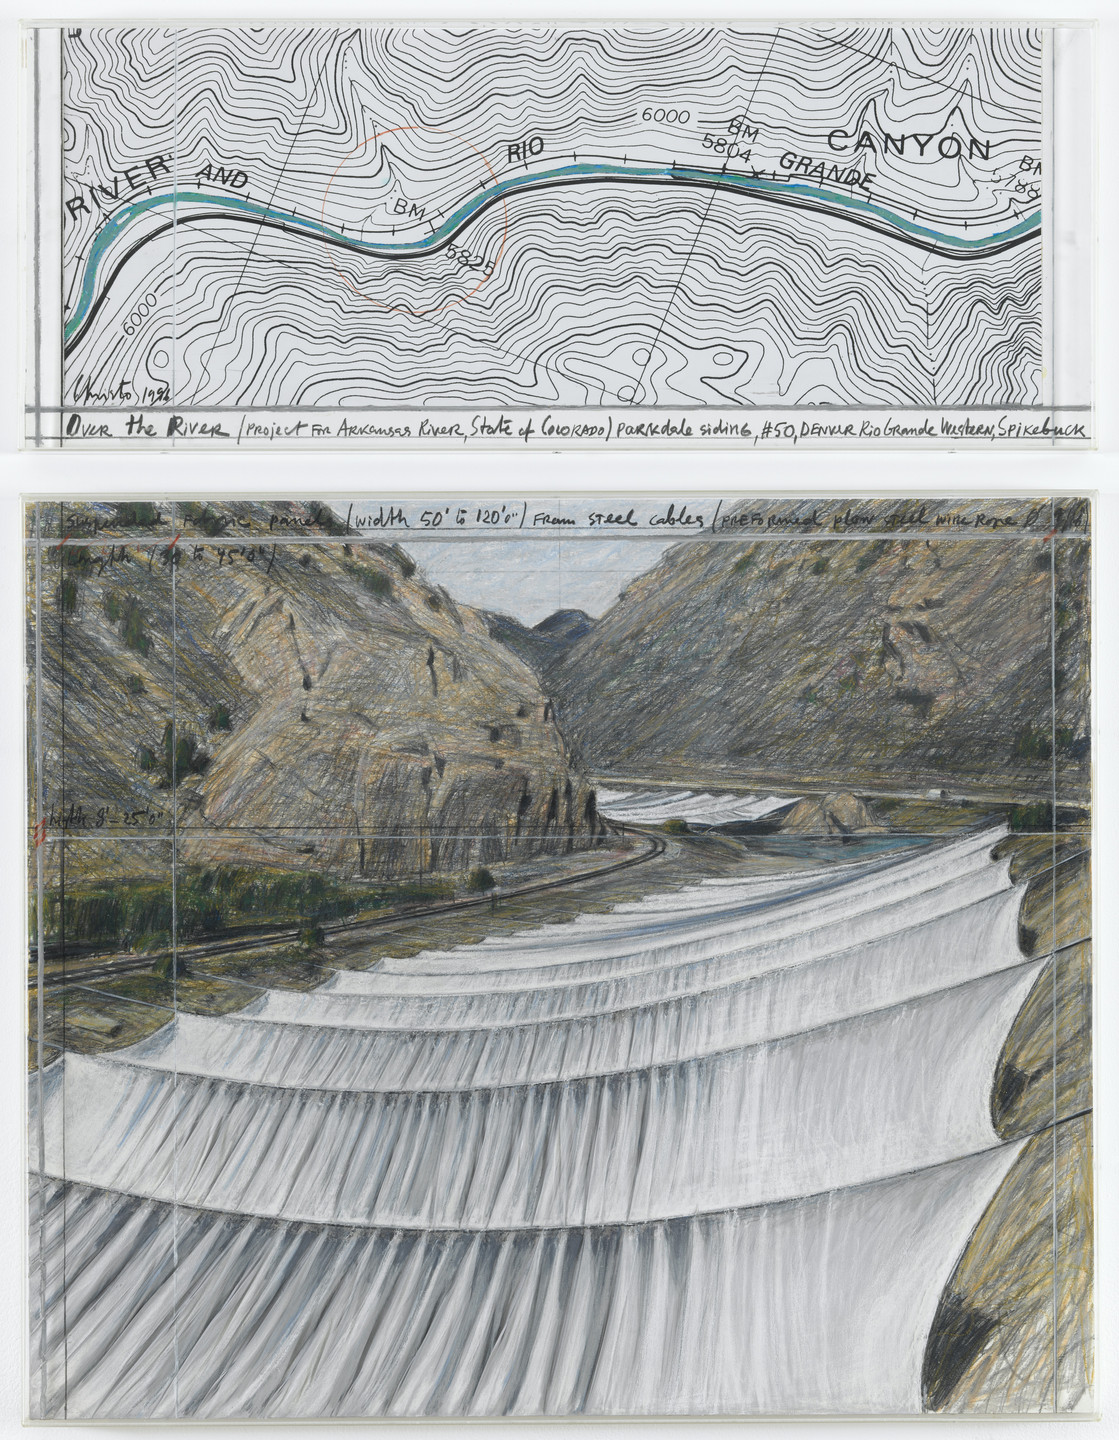 Christo. Over the River, Project for the Arkansas River, State of Colorado. 1996